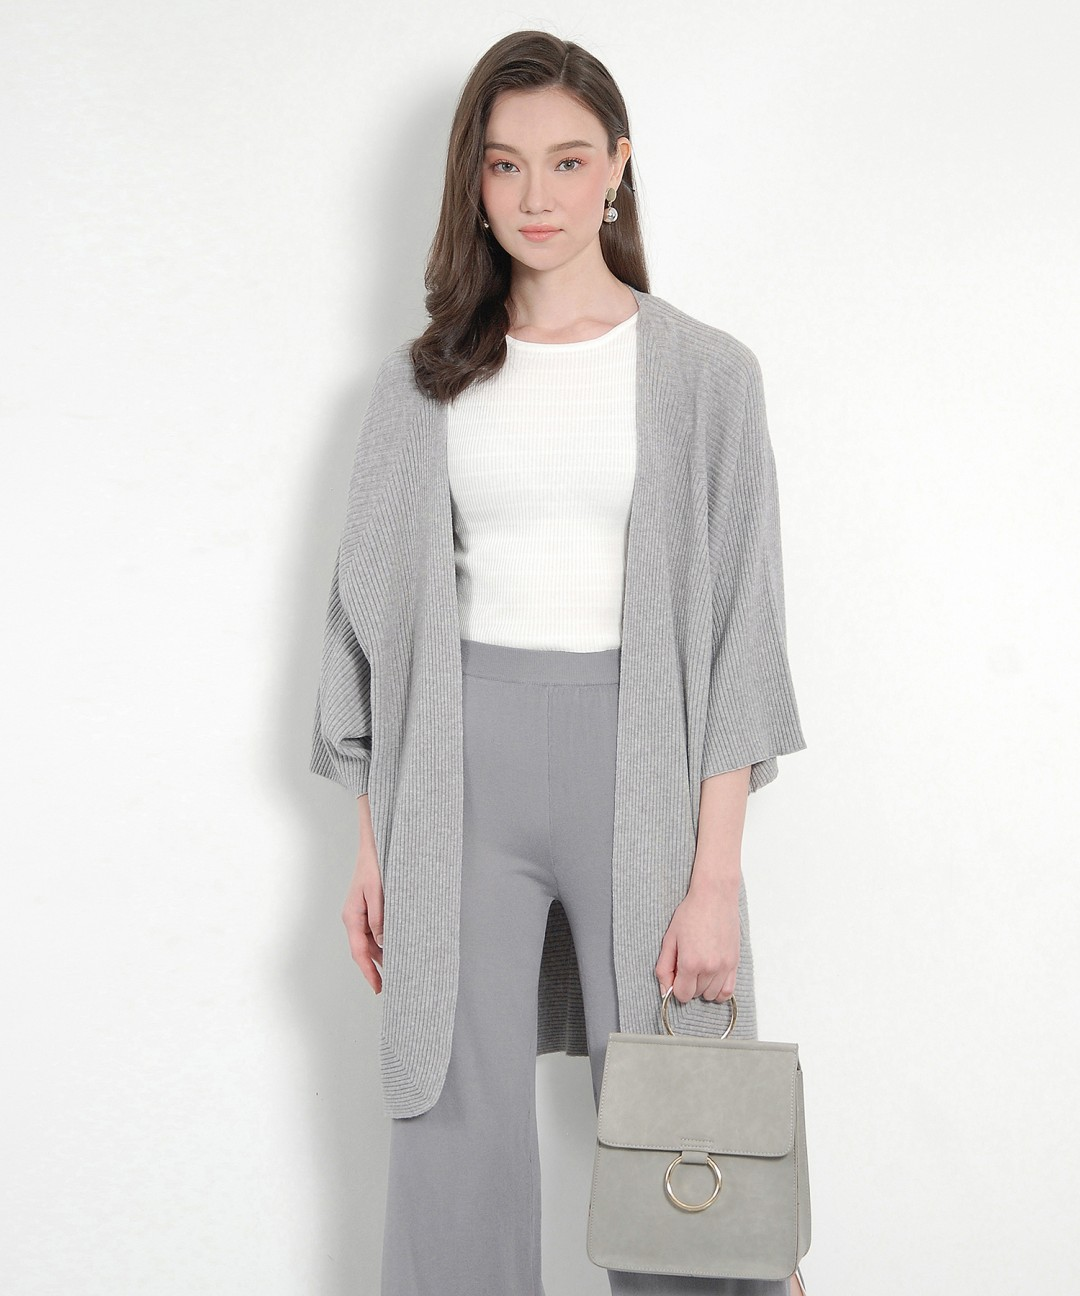 Elton Cardigan - Pale Grey - ShopperBoard